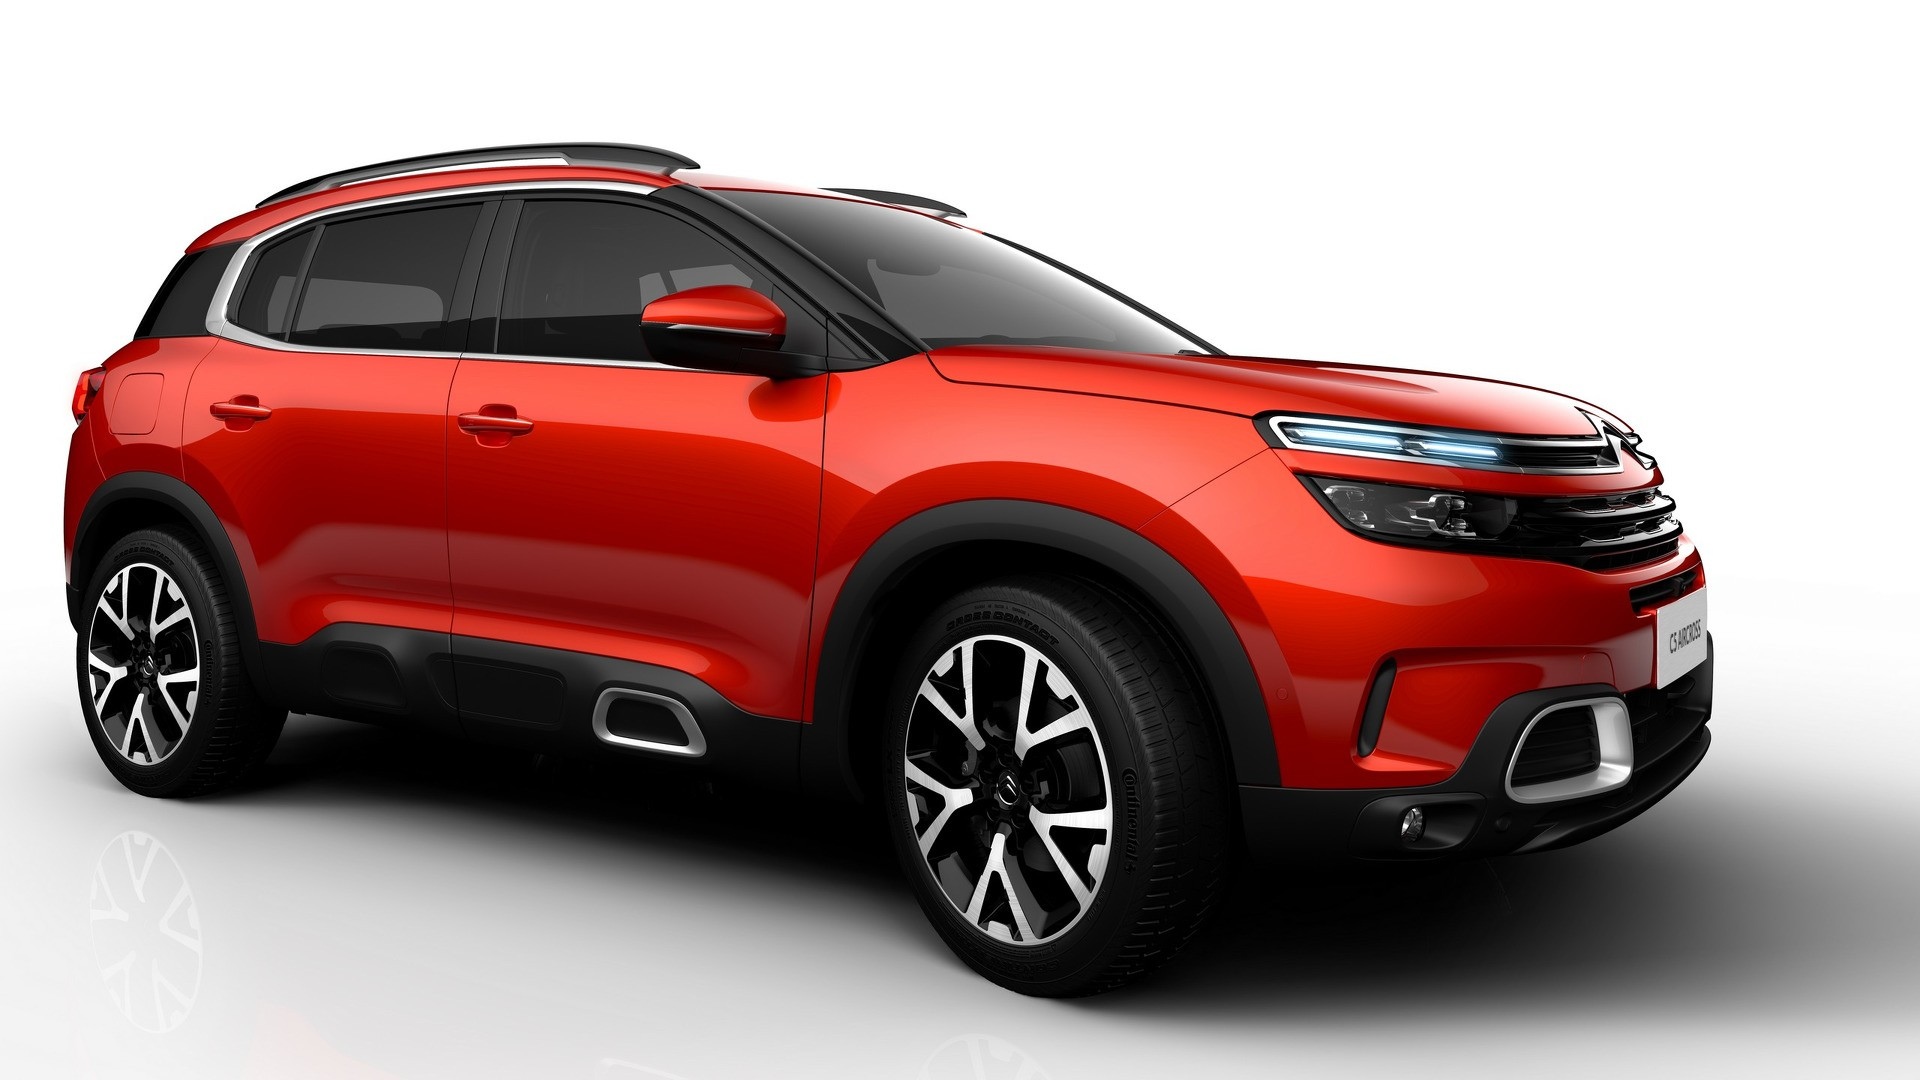 citroen suv crossover citroen c3 xr revealed at 2014 paris motor show irish car travel. Black Bedroom Furniture Sets. Home Design Ideas